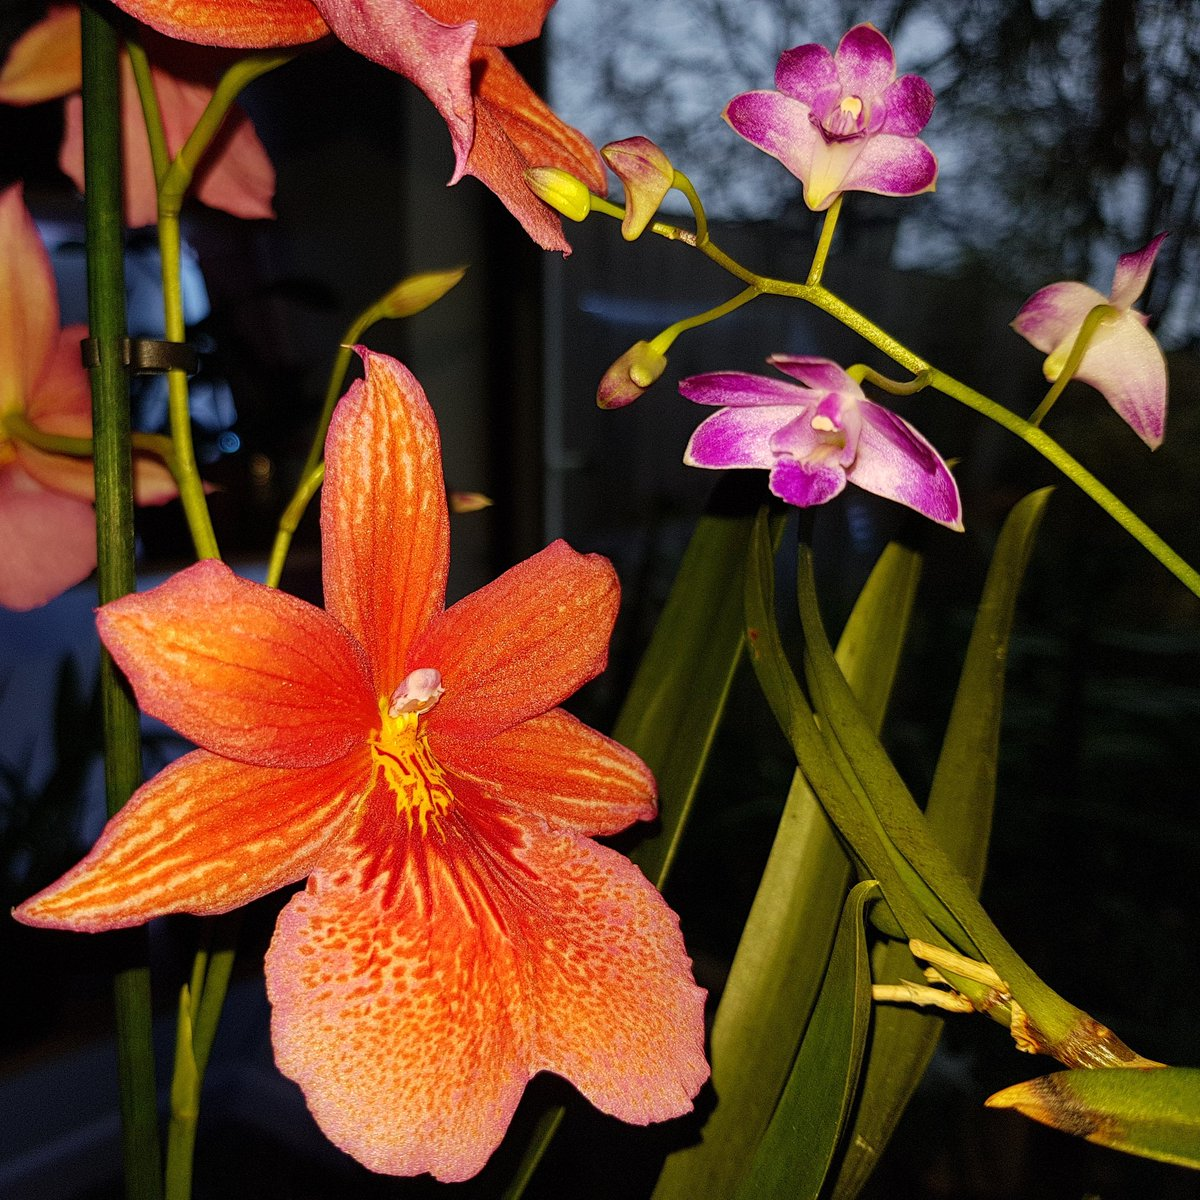 My Dendrobium Kingianum and Nelly Isler &#39;Boon&#39; with quite a size difference! #Orchids #Dendrobium #NellyIsler<br>http://pic.twitter.com/wkSPWCrgqo